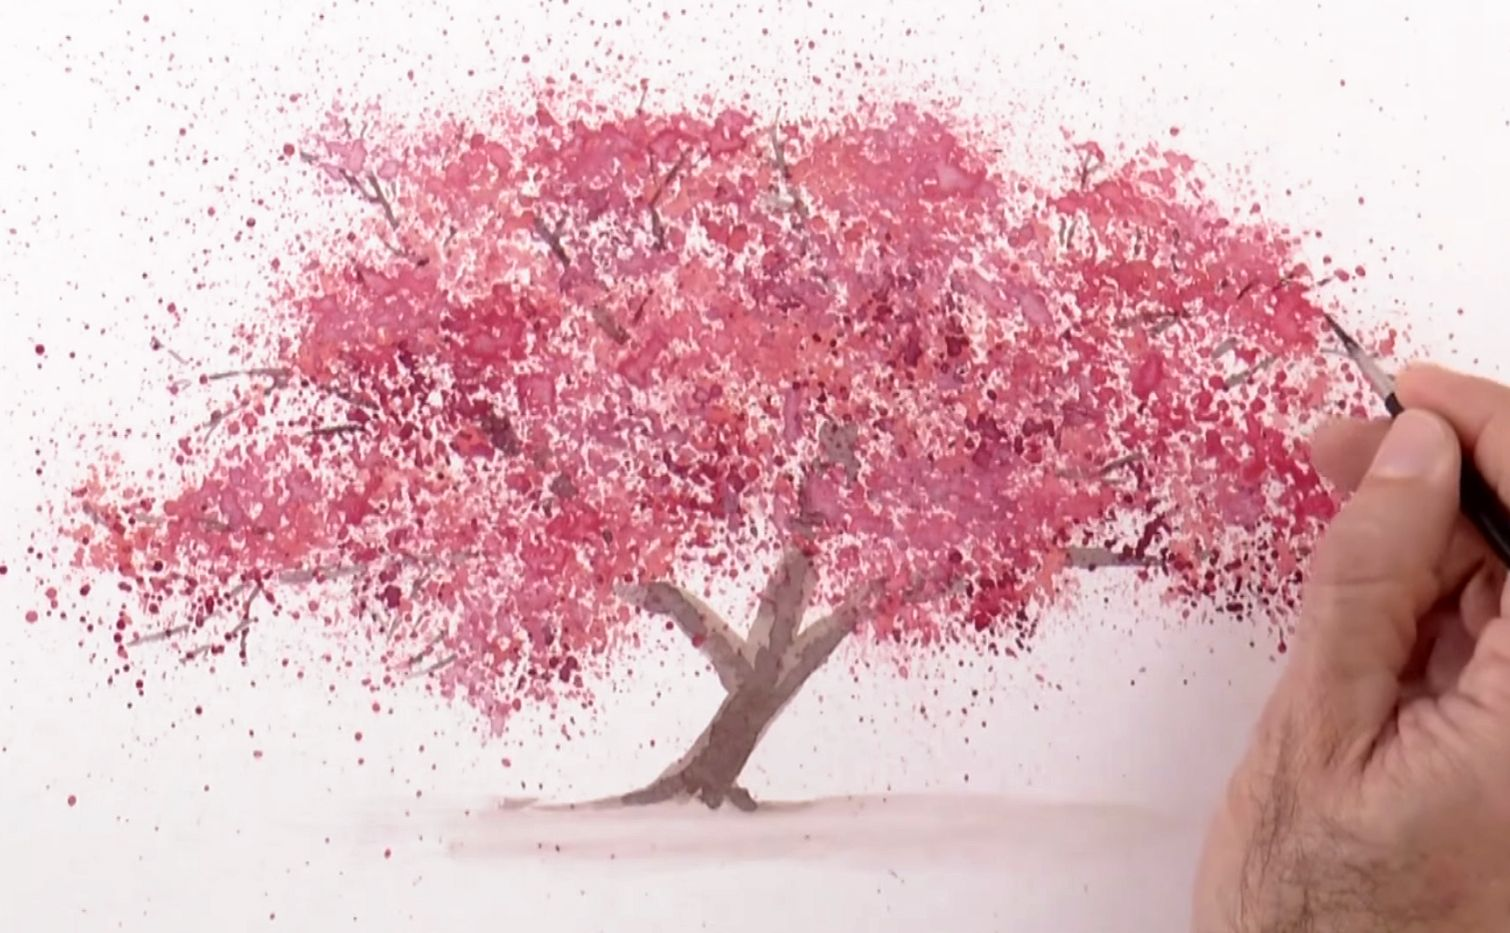 Watercolor Technique To Splatter Cherry Blossom Trees Cherry Blossom Painting Flower Drawing Sakura Painting